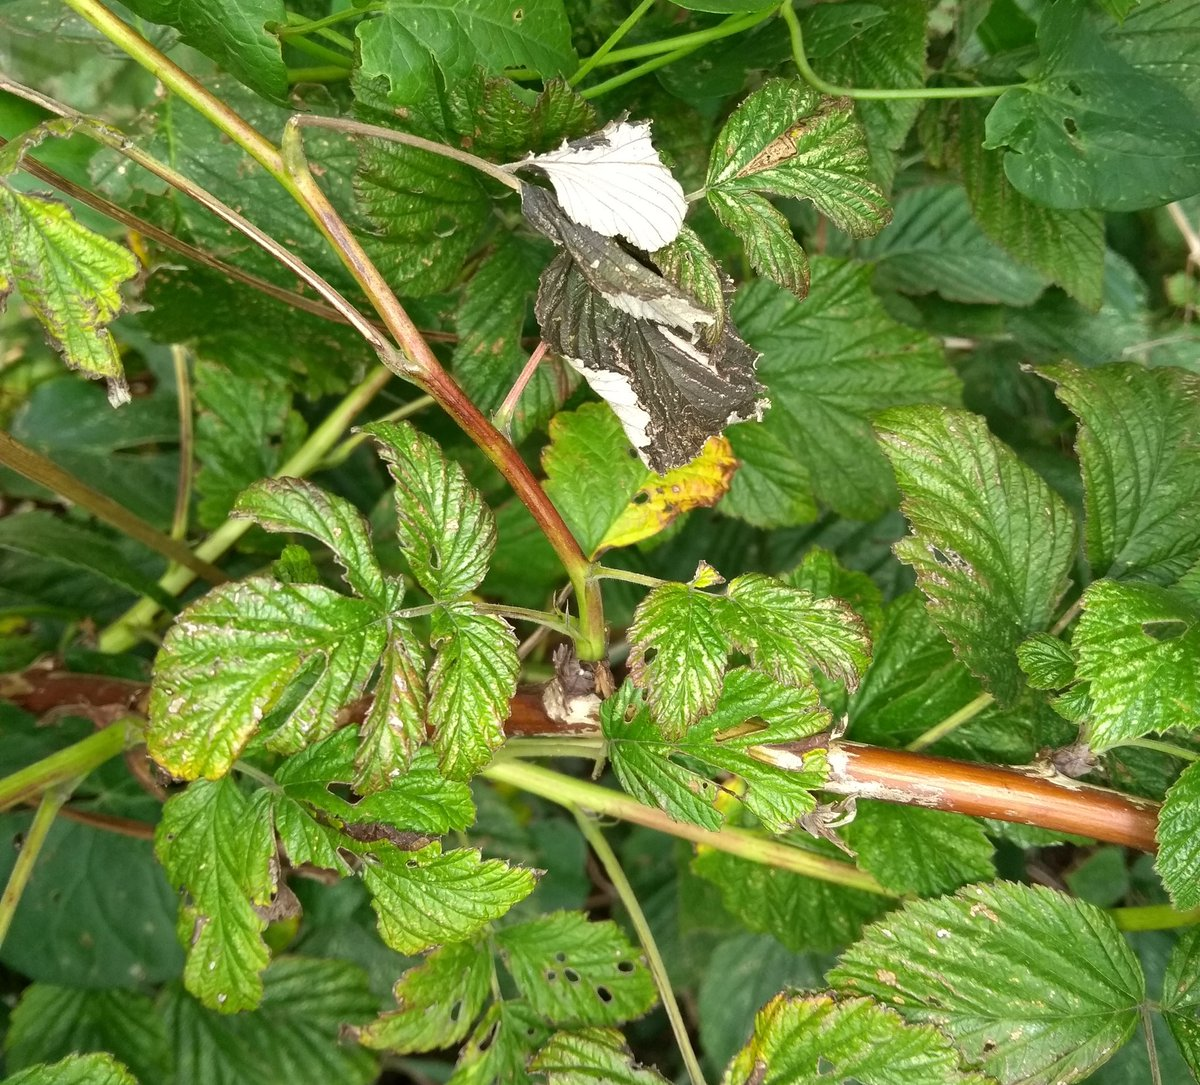 #nature #ukcountryside  #heatwave effect on plant life & where did the #raspberries go?